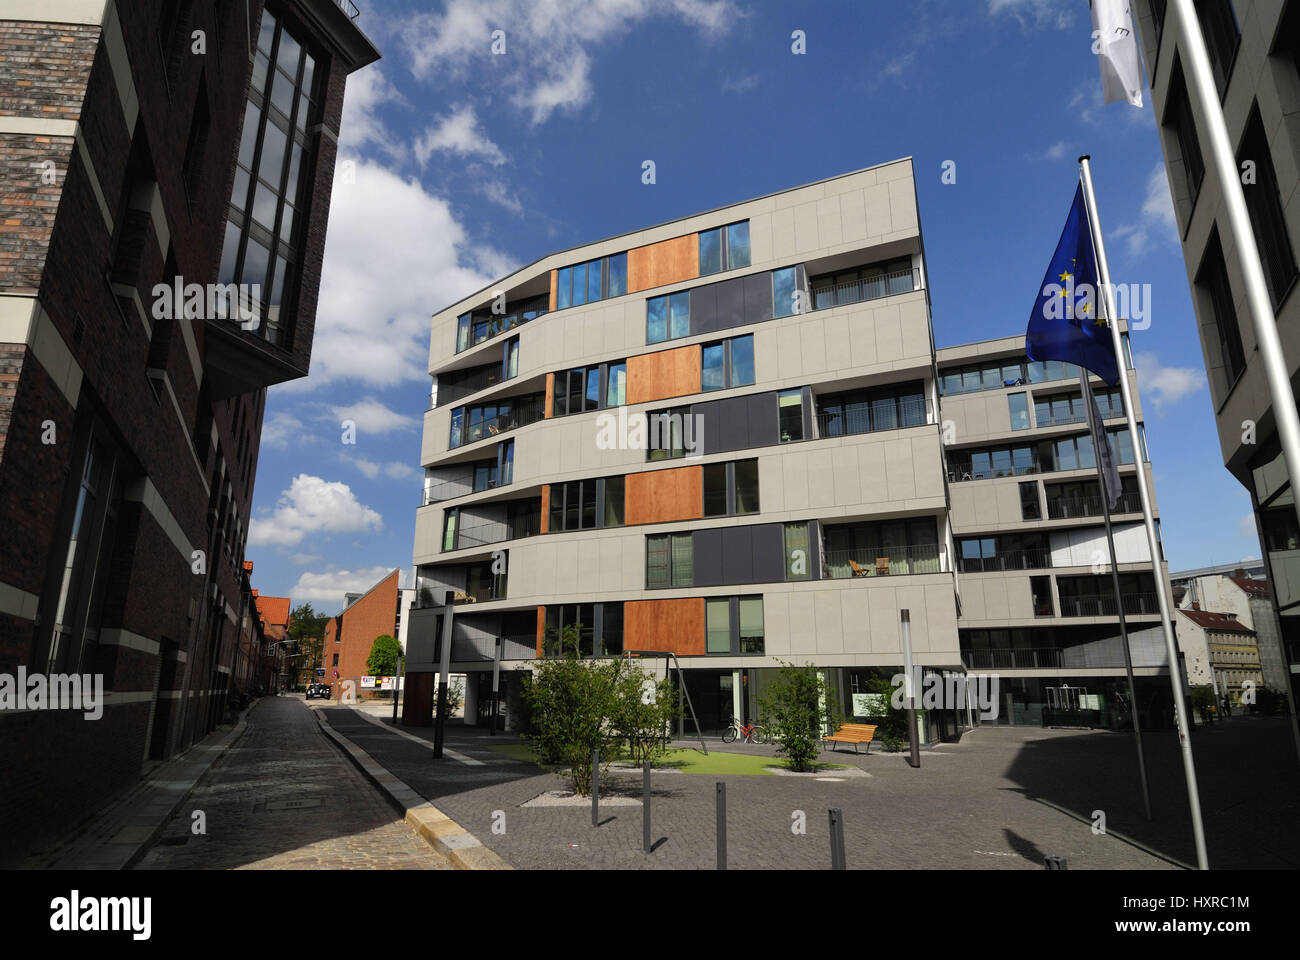 Moderne Wohnhäuser modern dwelling houses in the brahms s accommodation in hamburg